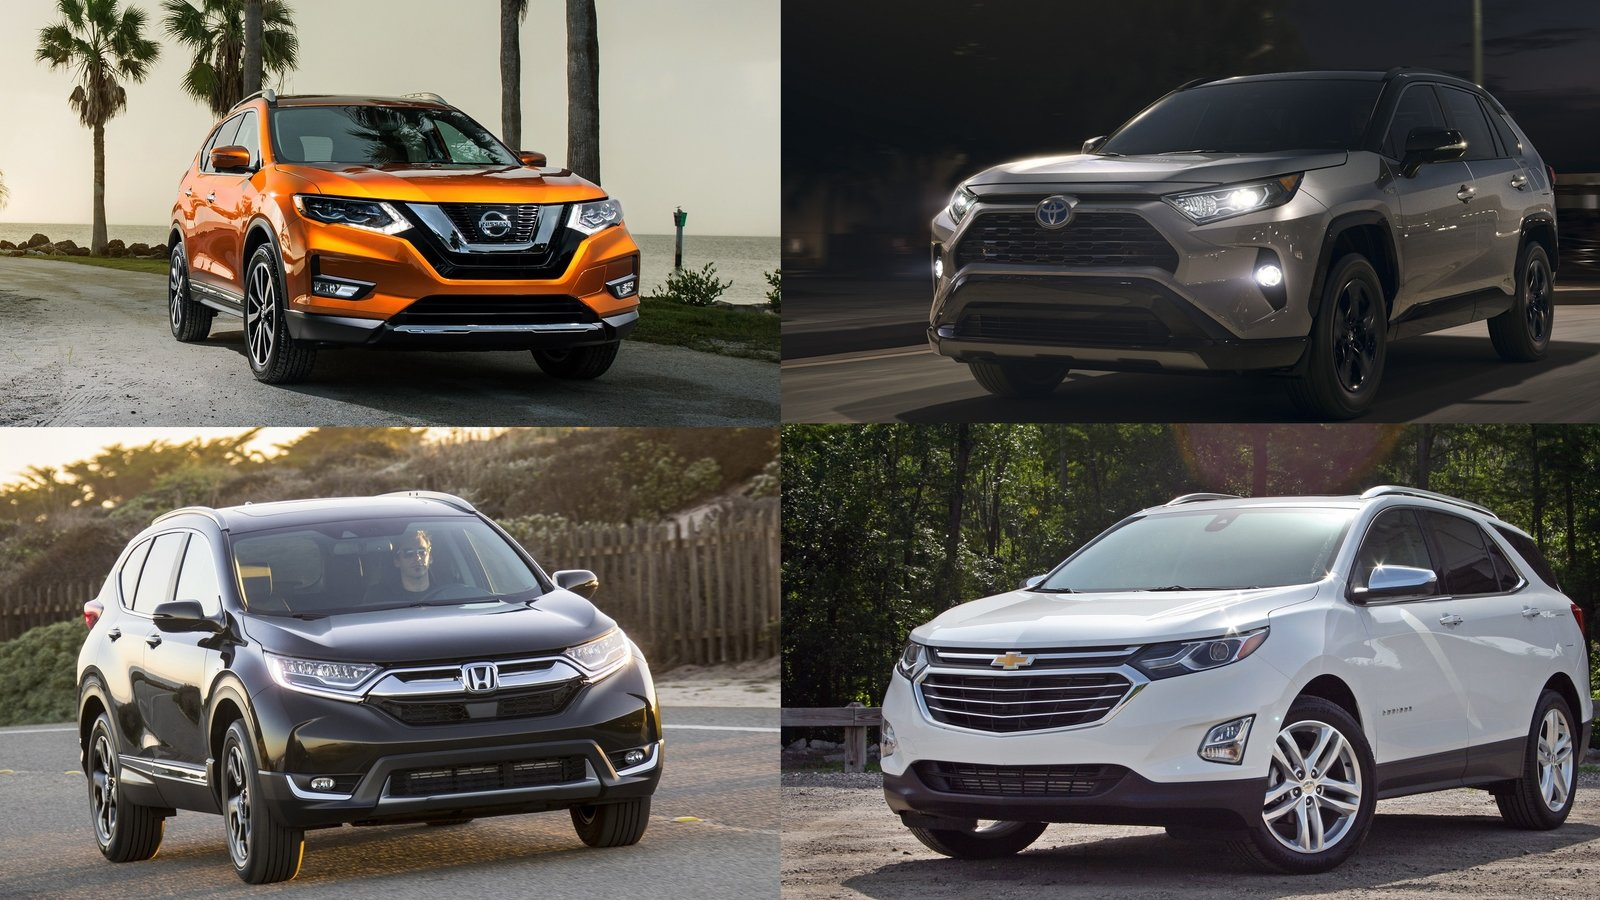 Best Crossover Cars: 10 Best Crossover SUVs Of 2018